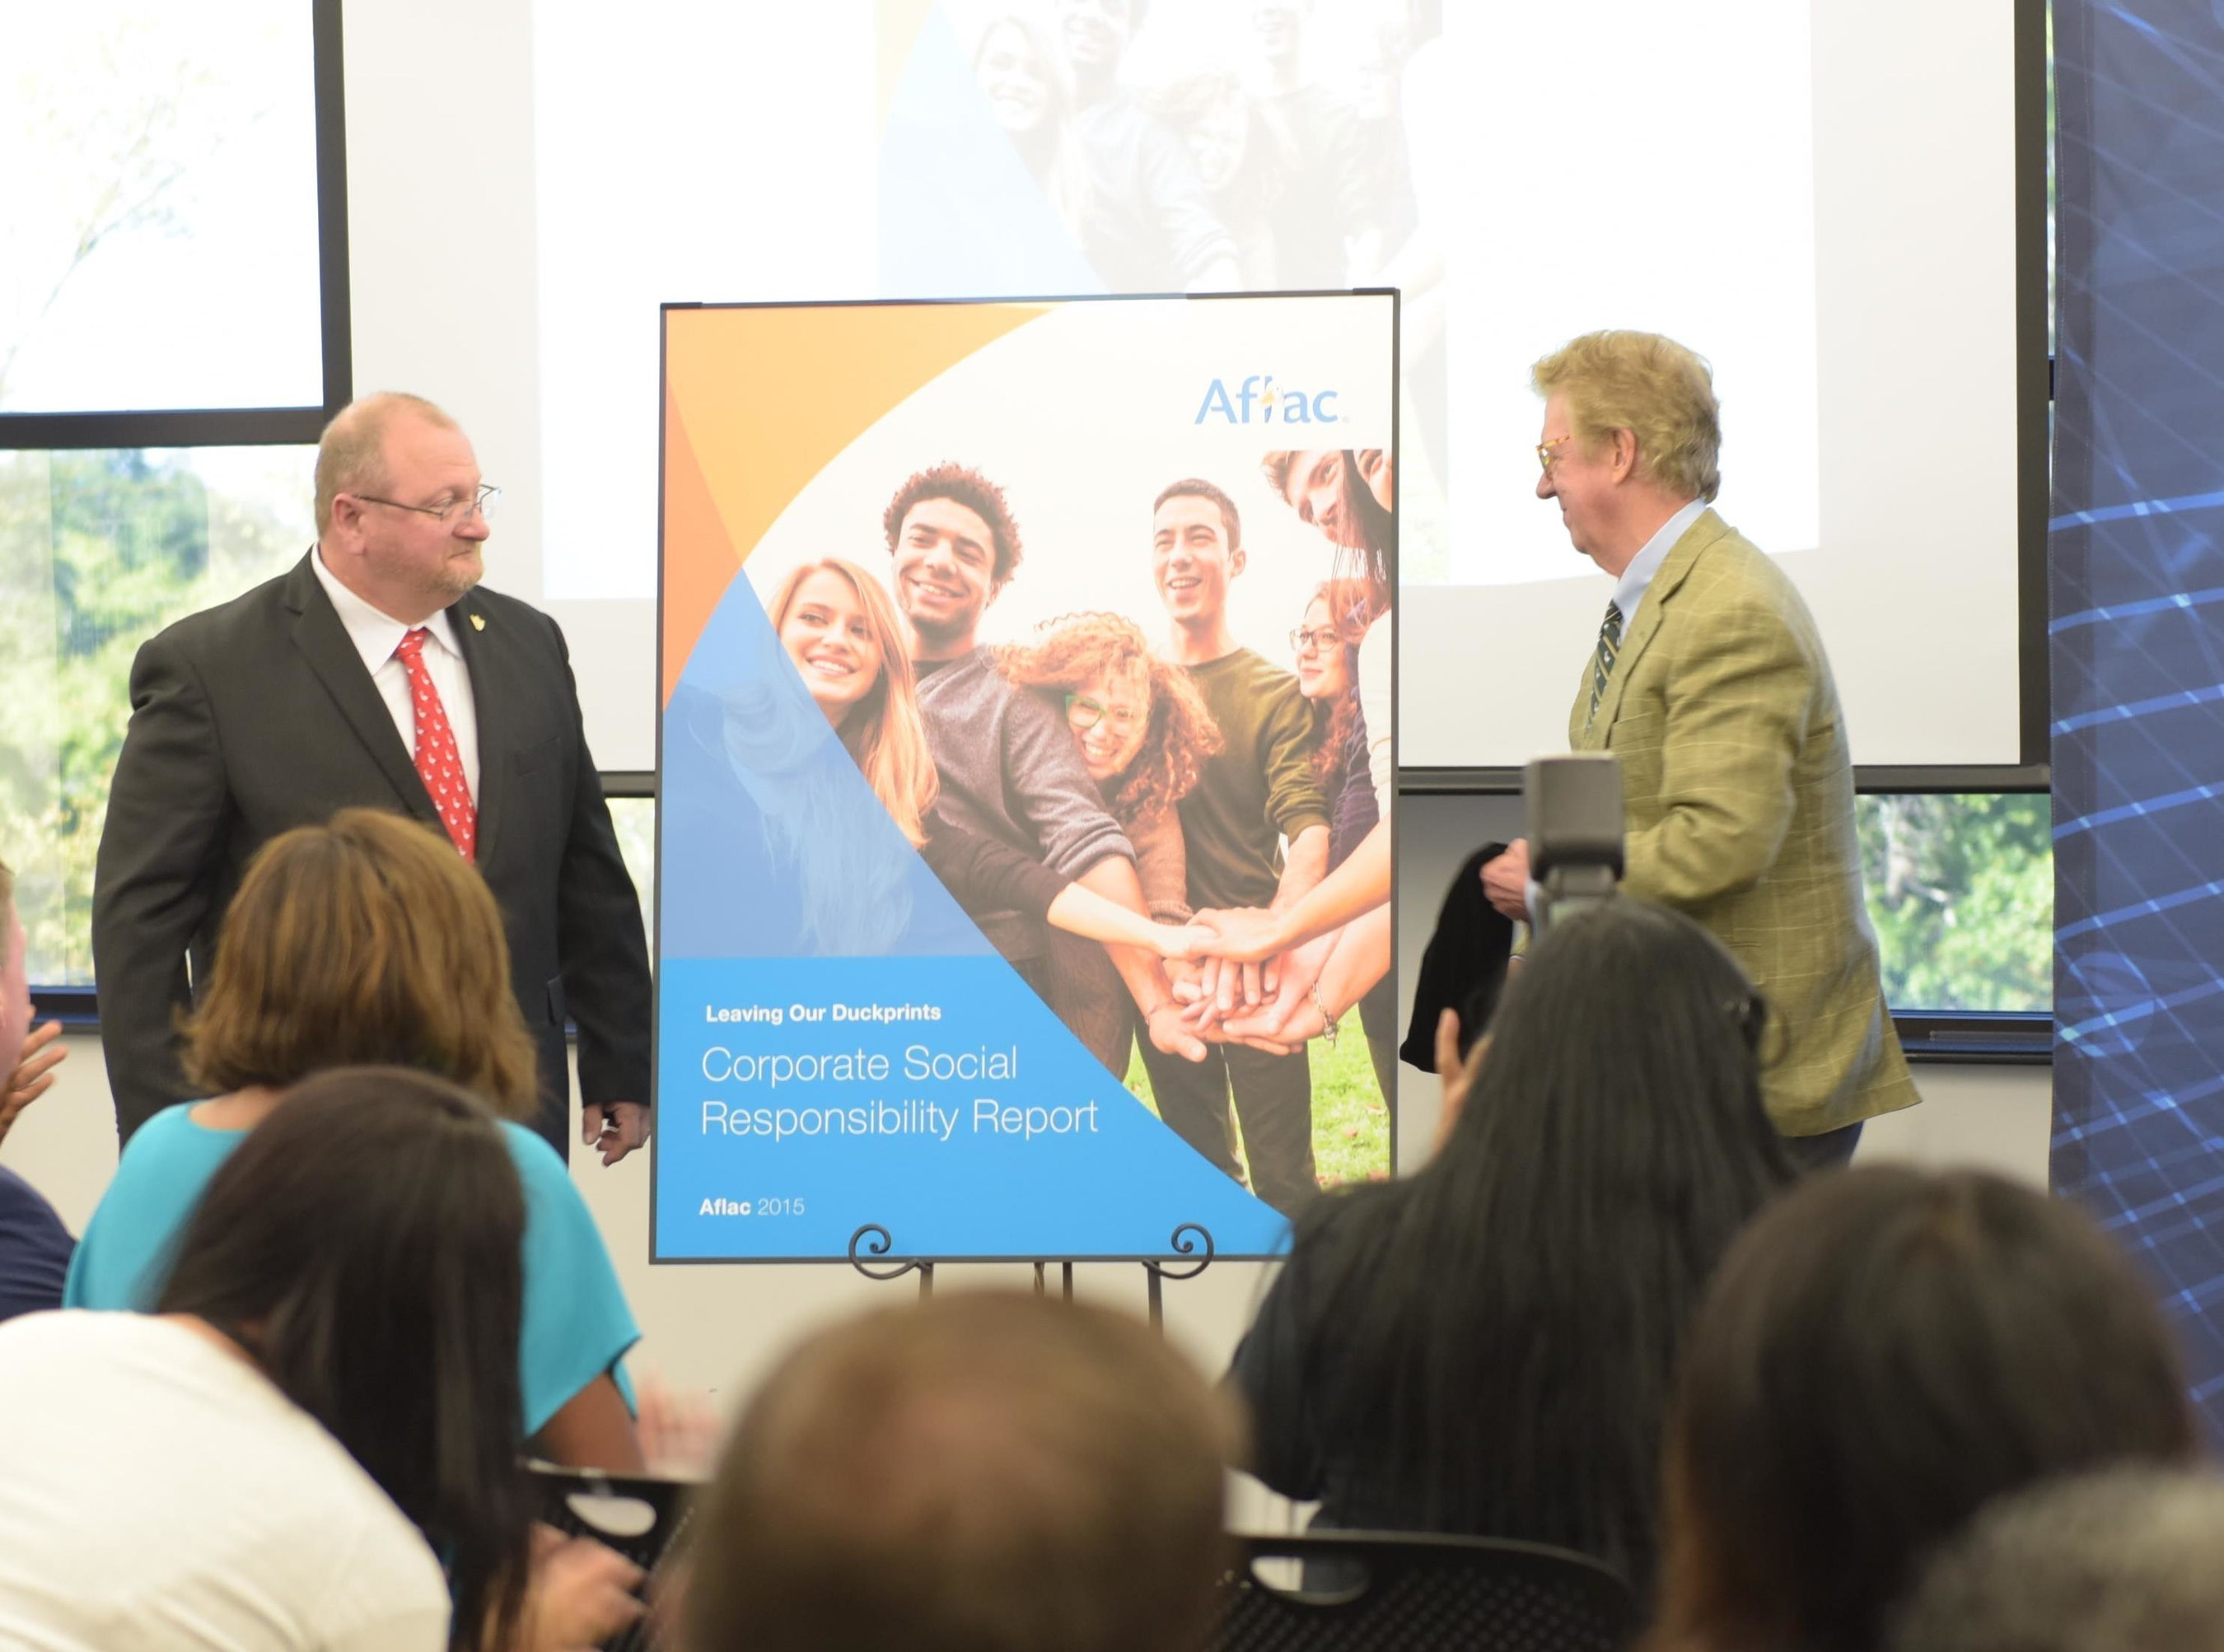 Aflac Chairman and CEO Dan Amos (r.) and 2015 Hero of the Fortune 500 Award winner James Mailman unveil Aflac's 2015 Corporate Social Responsibility Report at a company celebration in Columbus, Georgia. See the report at Aflac.com/csrreport